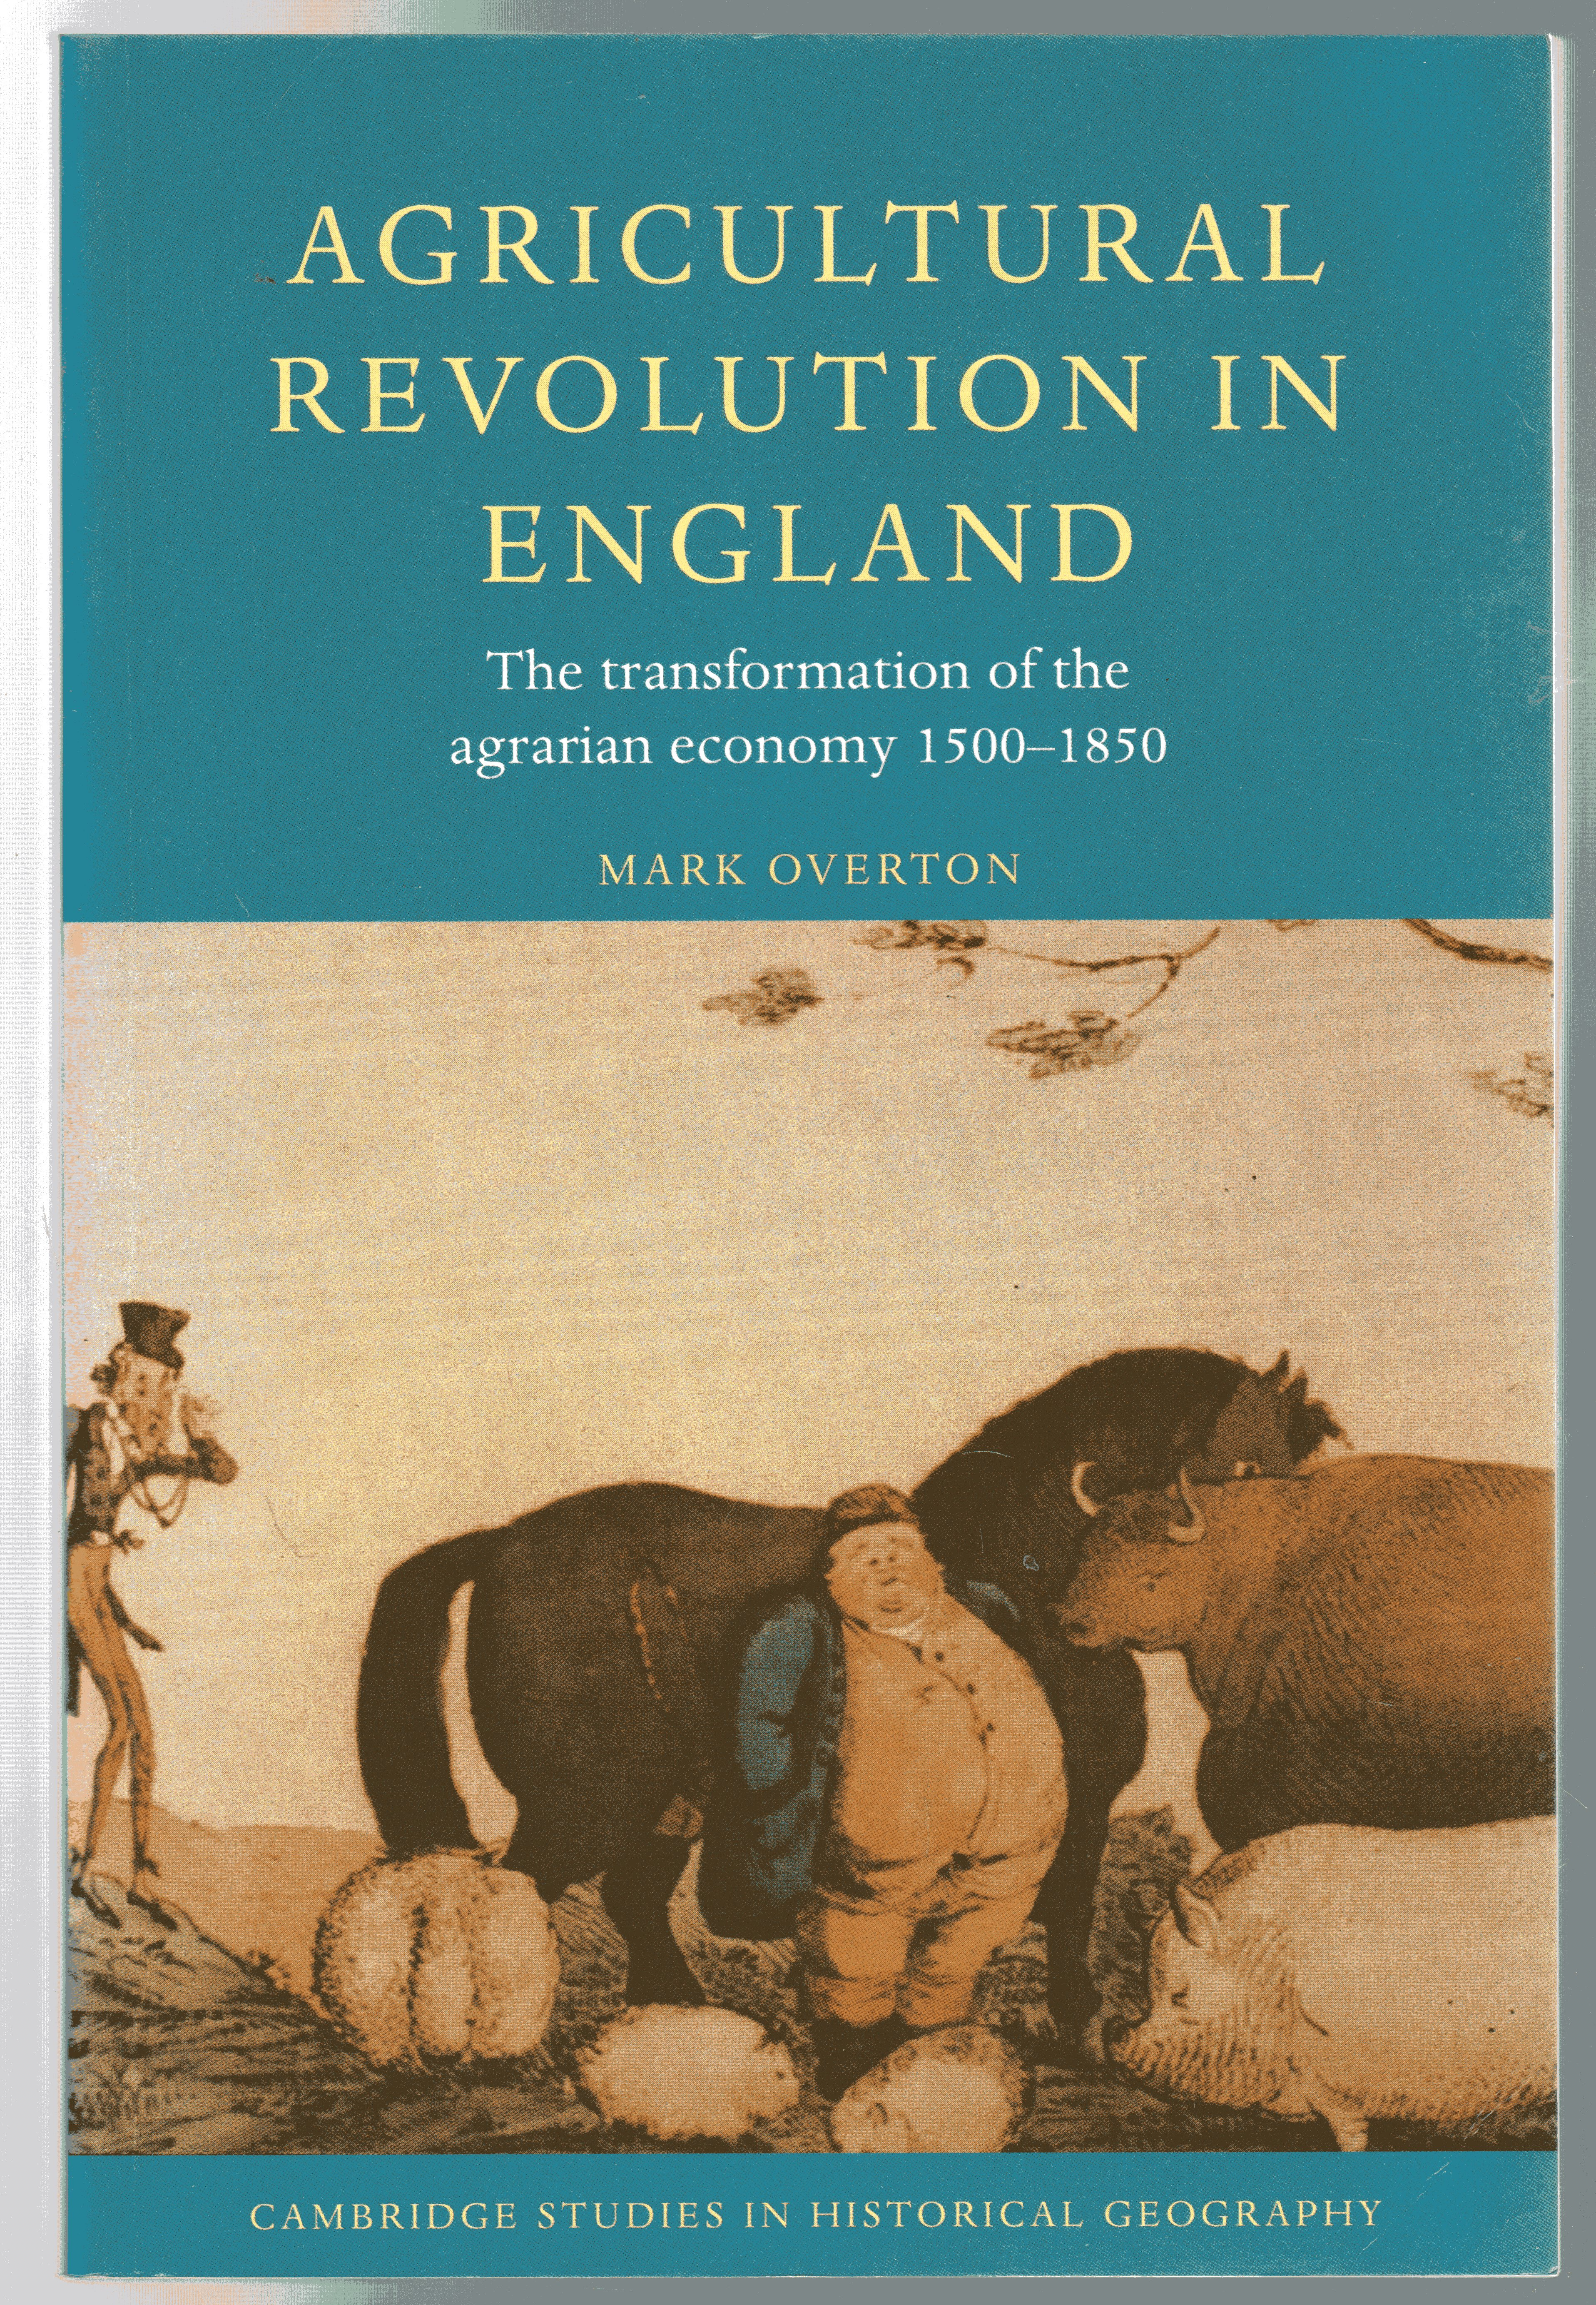 Image for Agricultural Revolution in England : The Transformation of the Agrarian Economy 1500-1850